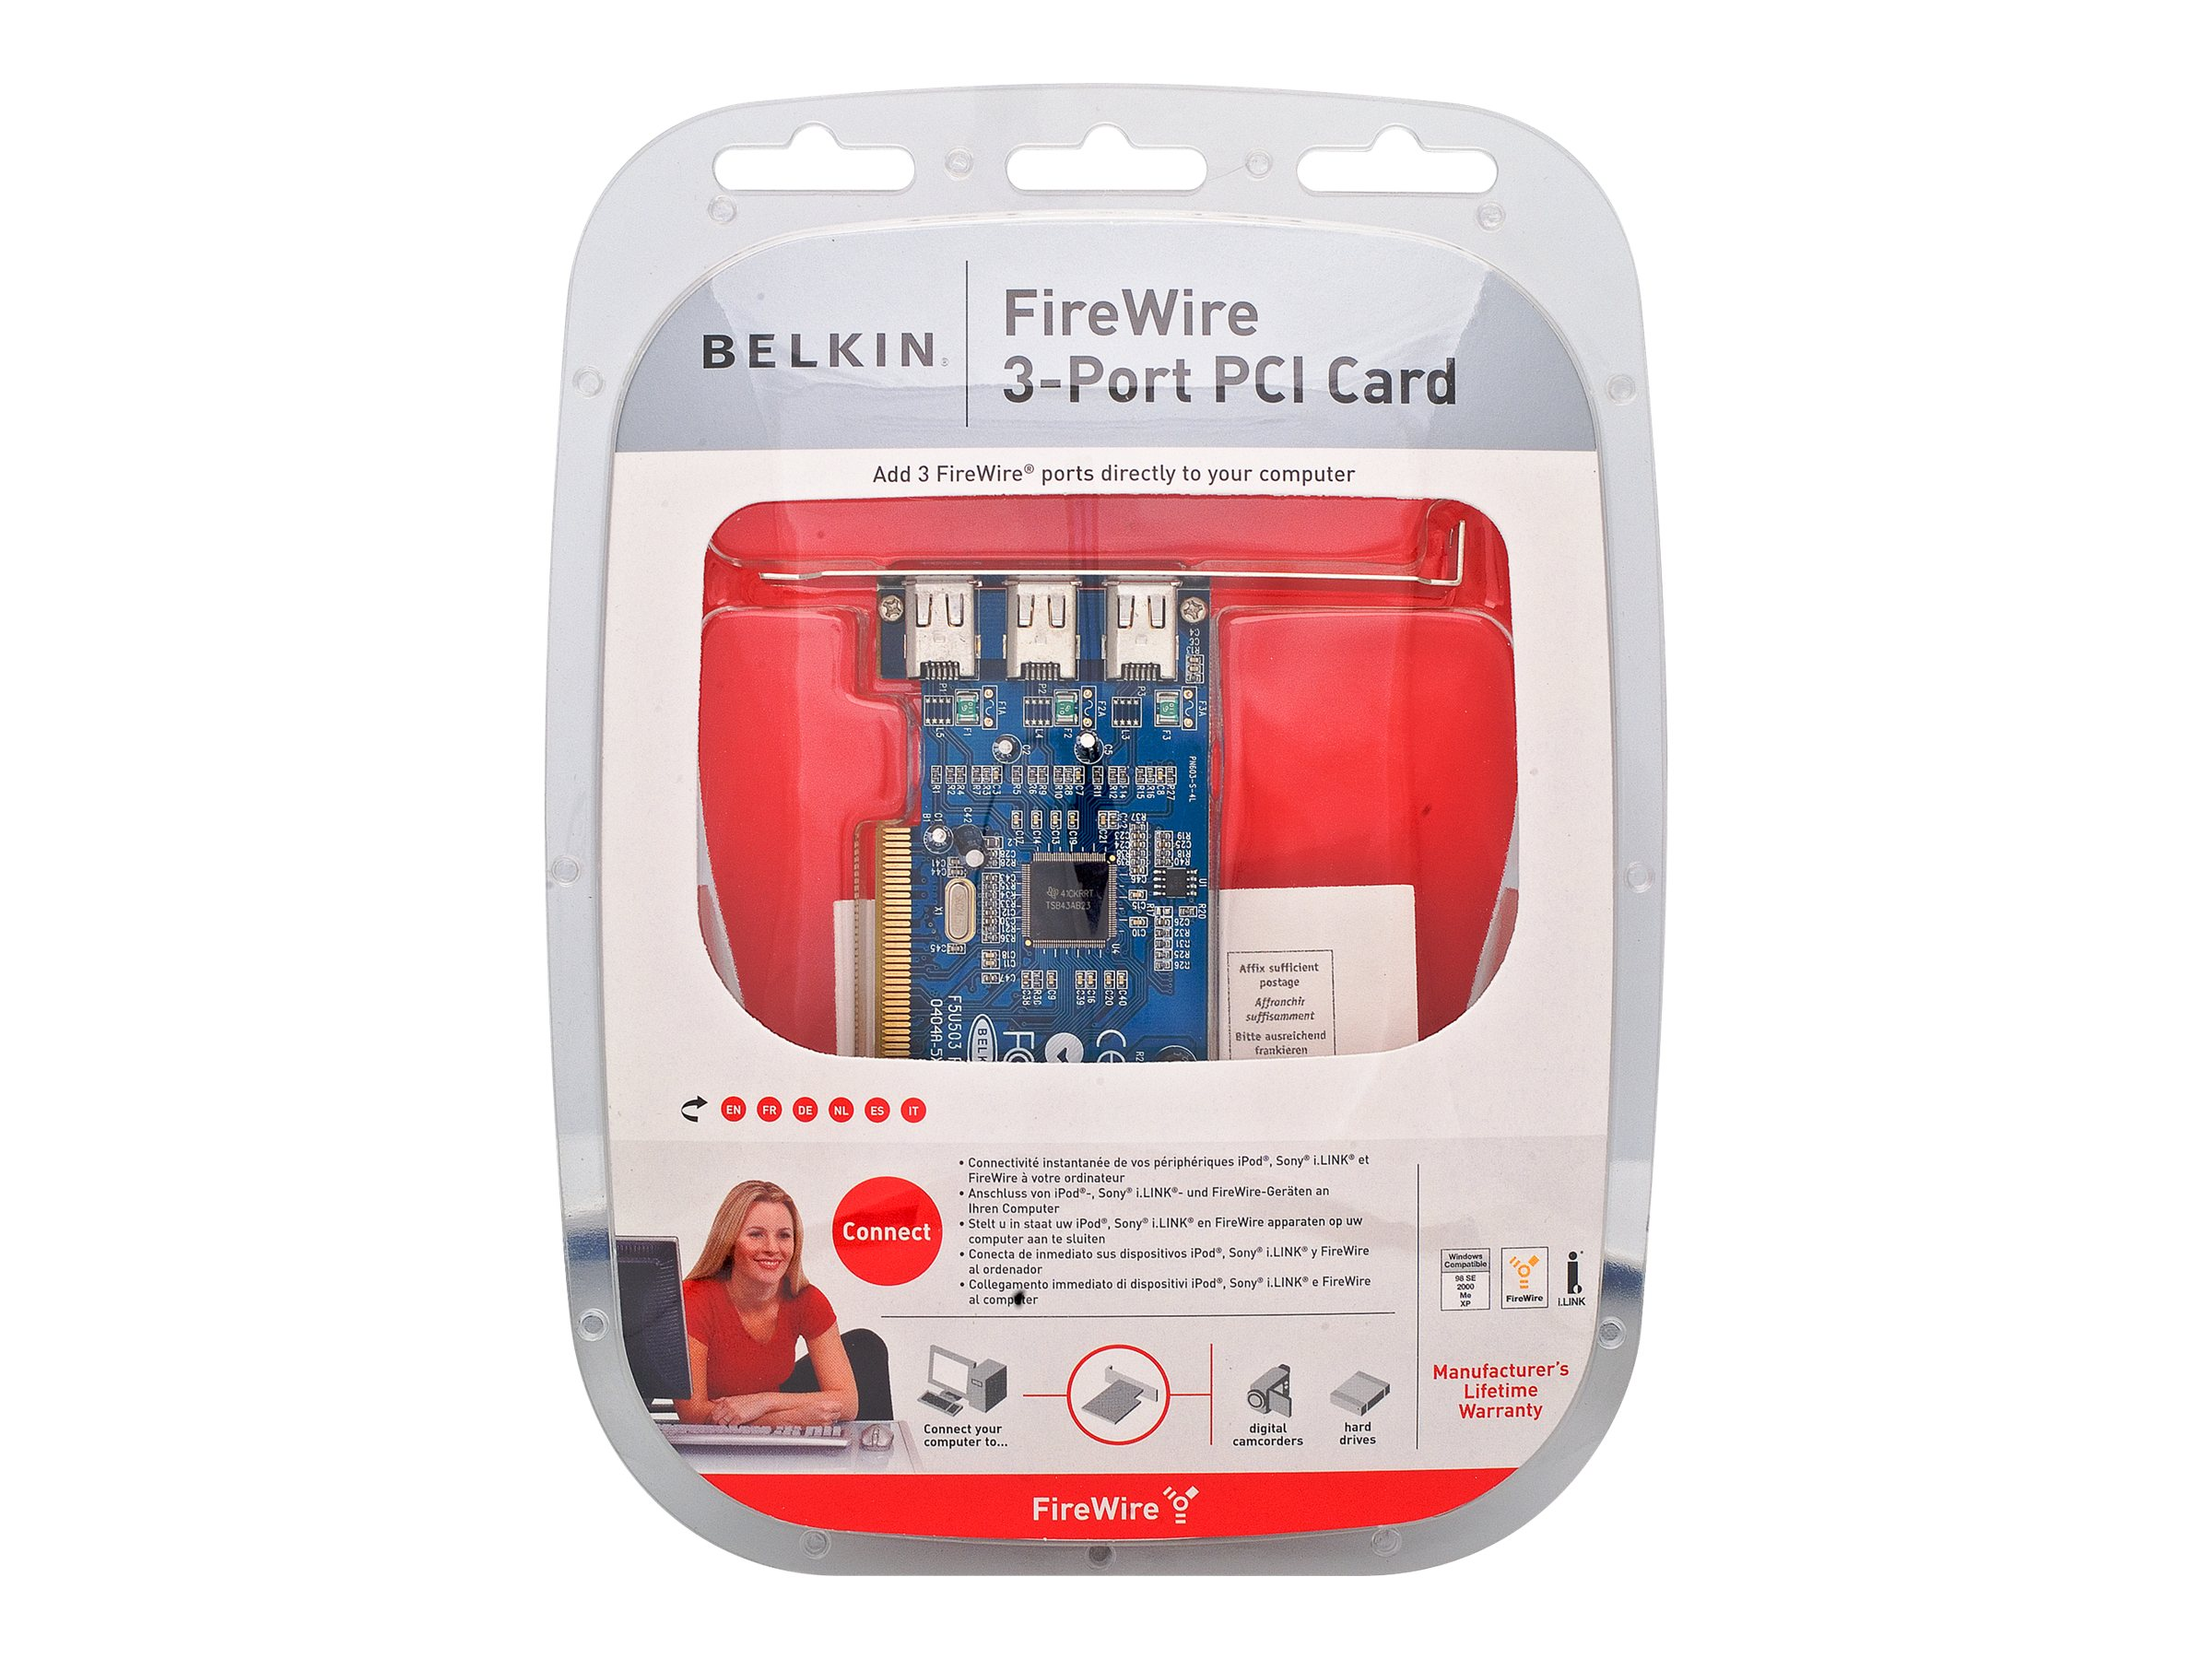 Belkin FireWire 3-Port PCI Card - Clamshell Packaging, F5U503V, 6647147, Controller Cards & I/O Boards